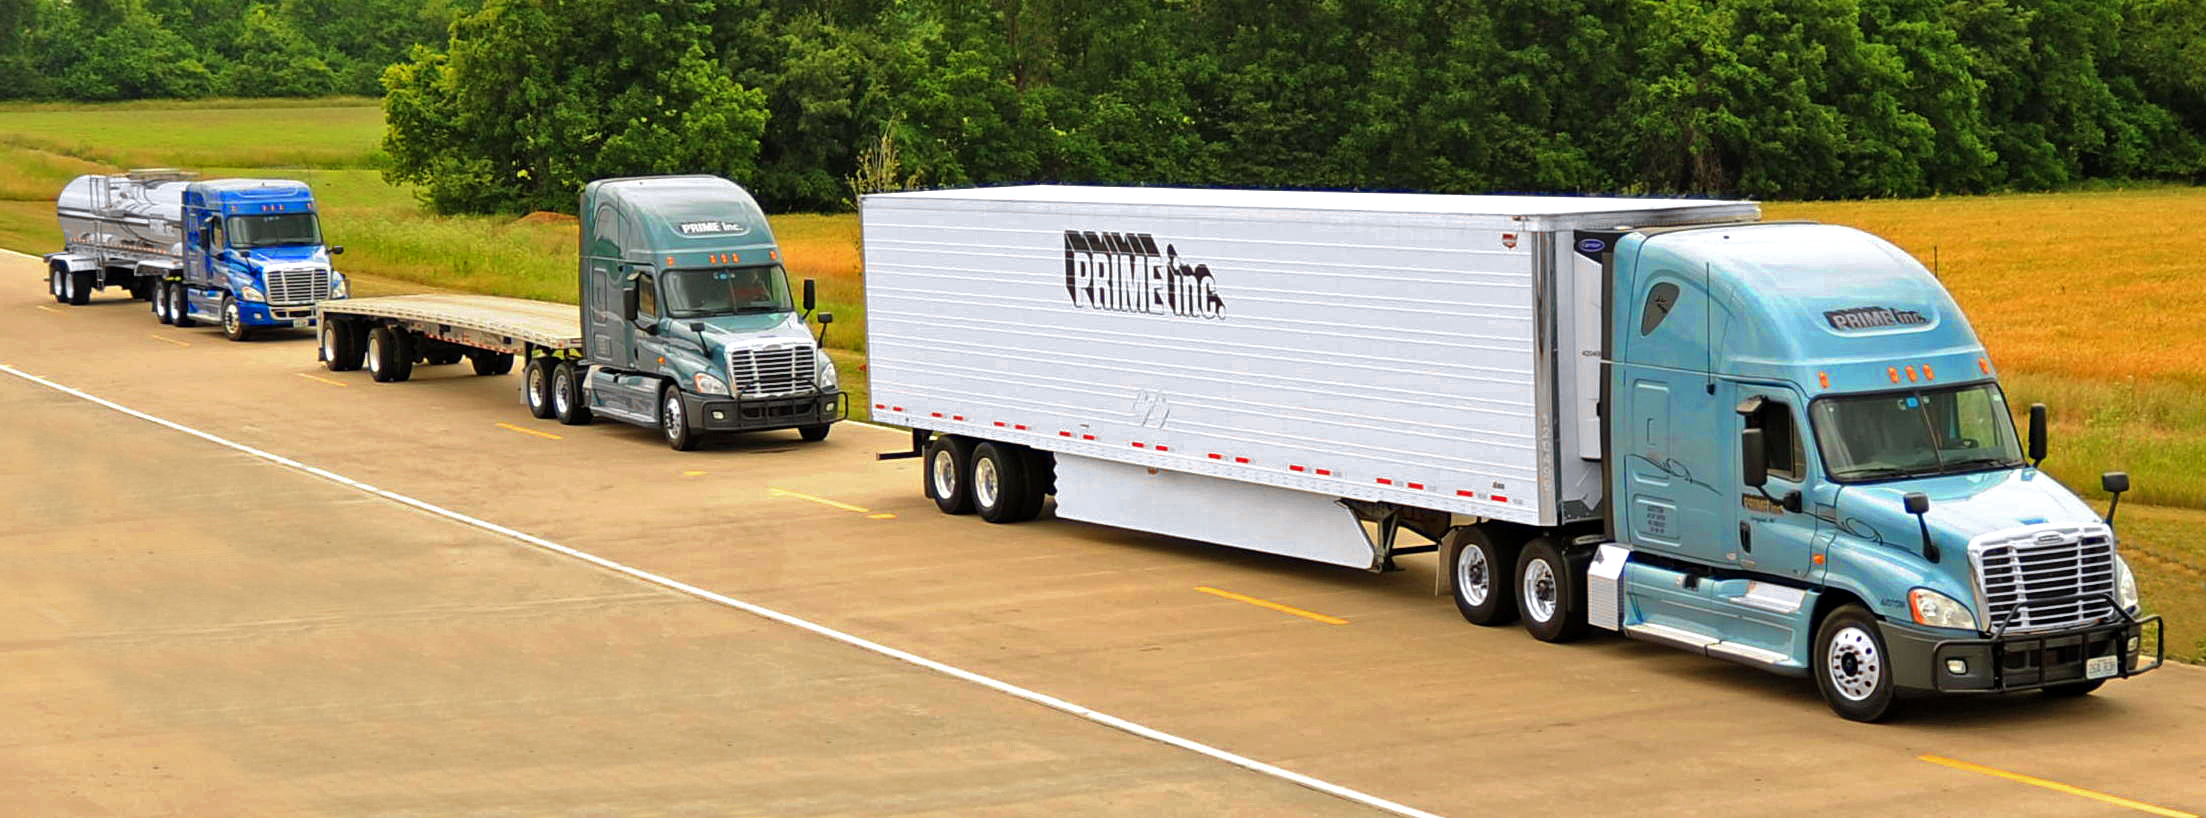 Prime Inc Uses Apus Innovative Tanker System To Cut Idle Costs Freight Truck Fuel Pump Smarts Trucking Info